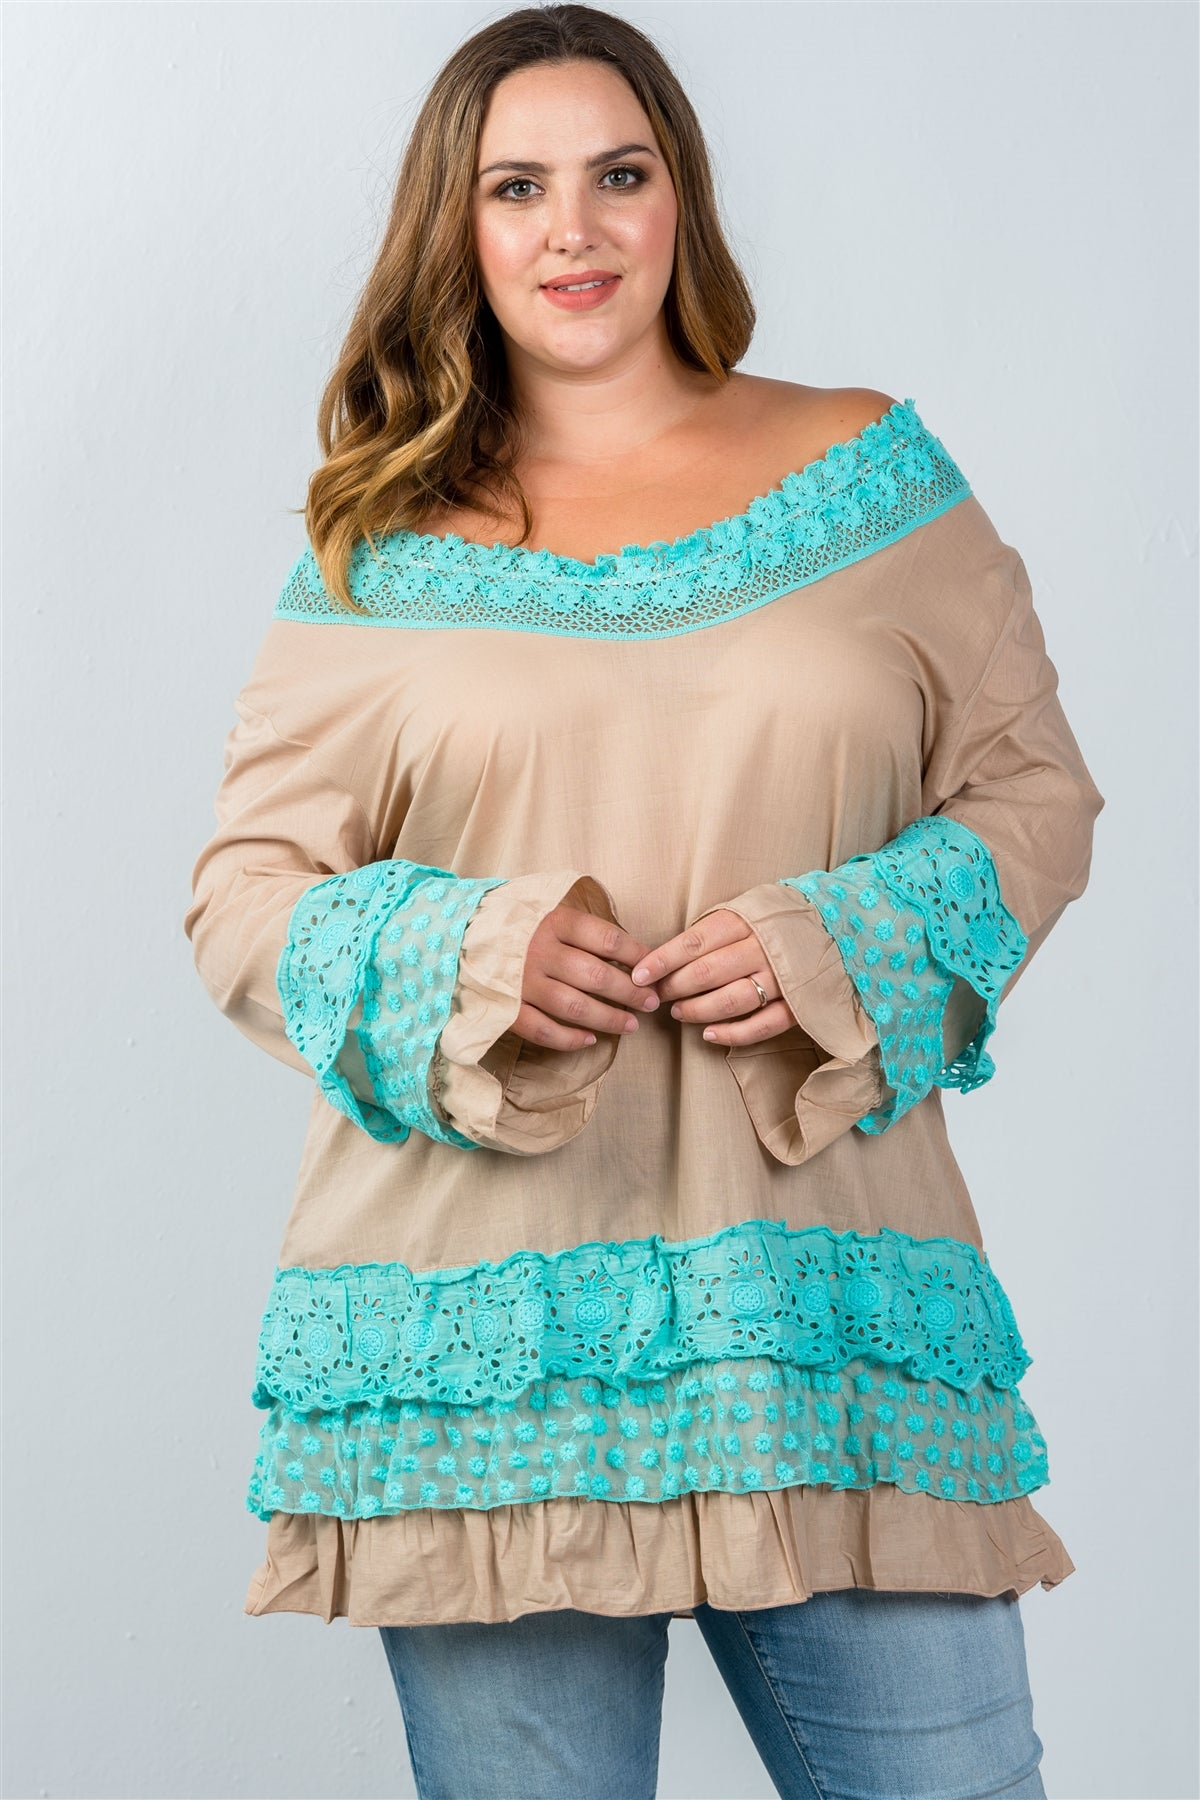 Ladies fashion plus size beige floral lace crochet tunic top